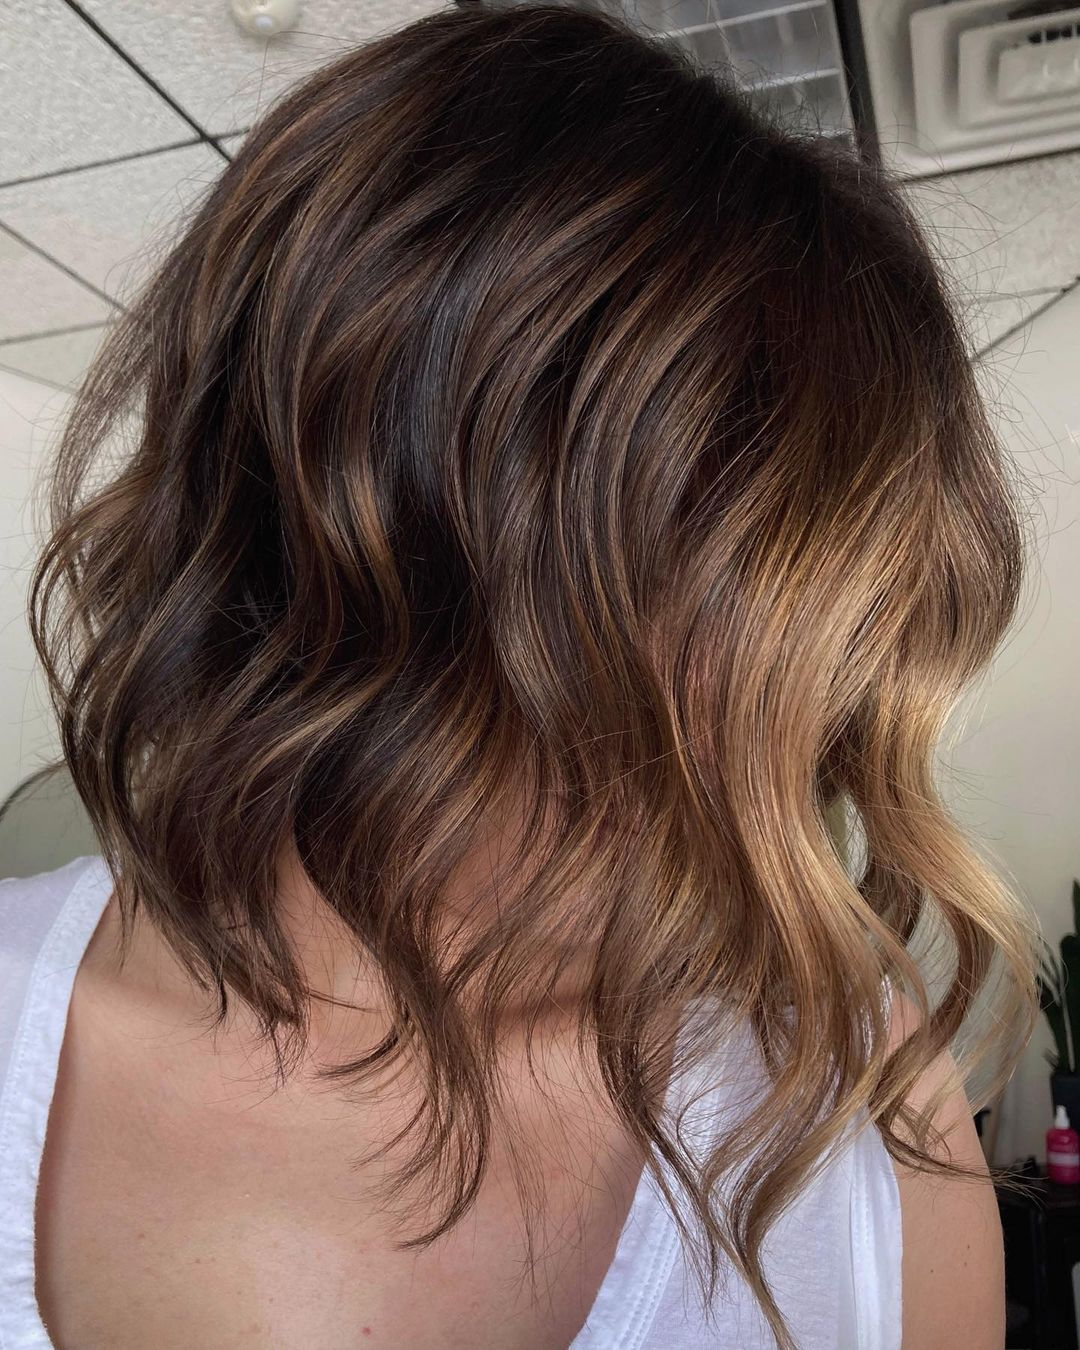 Cute Curled Lob with Partial Balayage